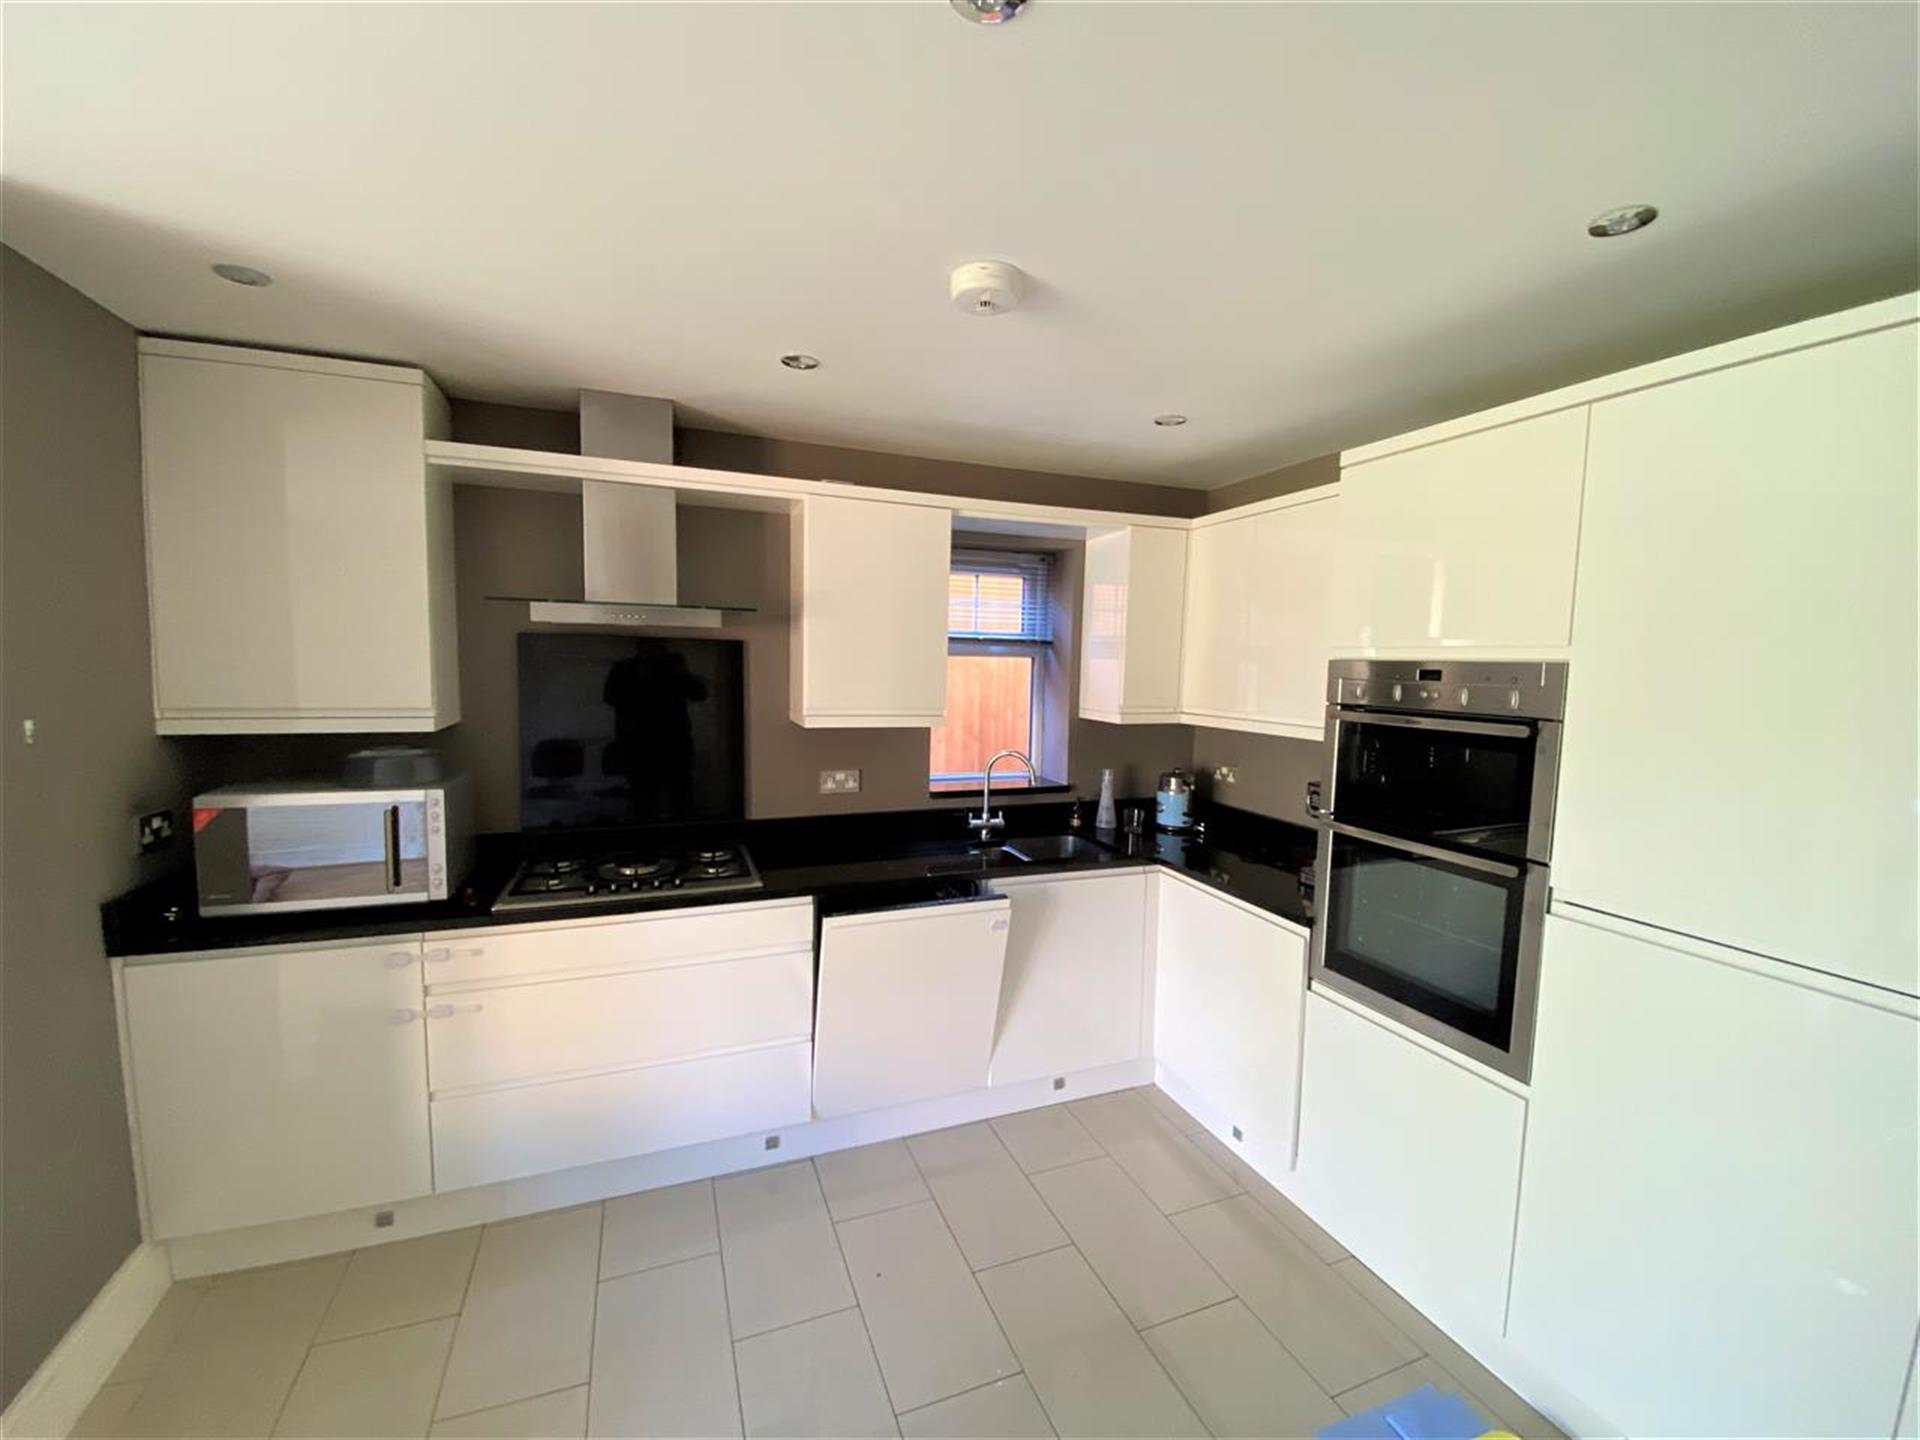 4 Bedroom Semi-detached House For Sale - Kitchen Diner